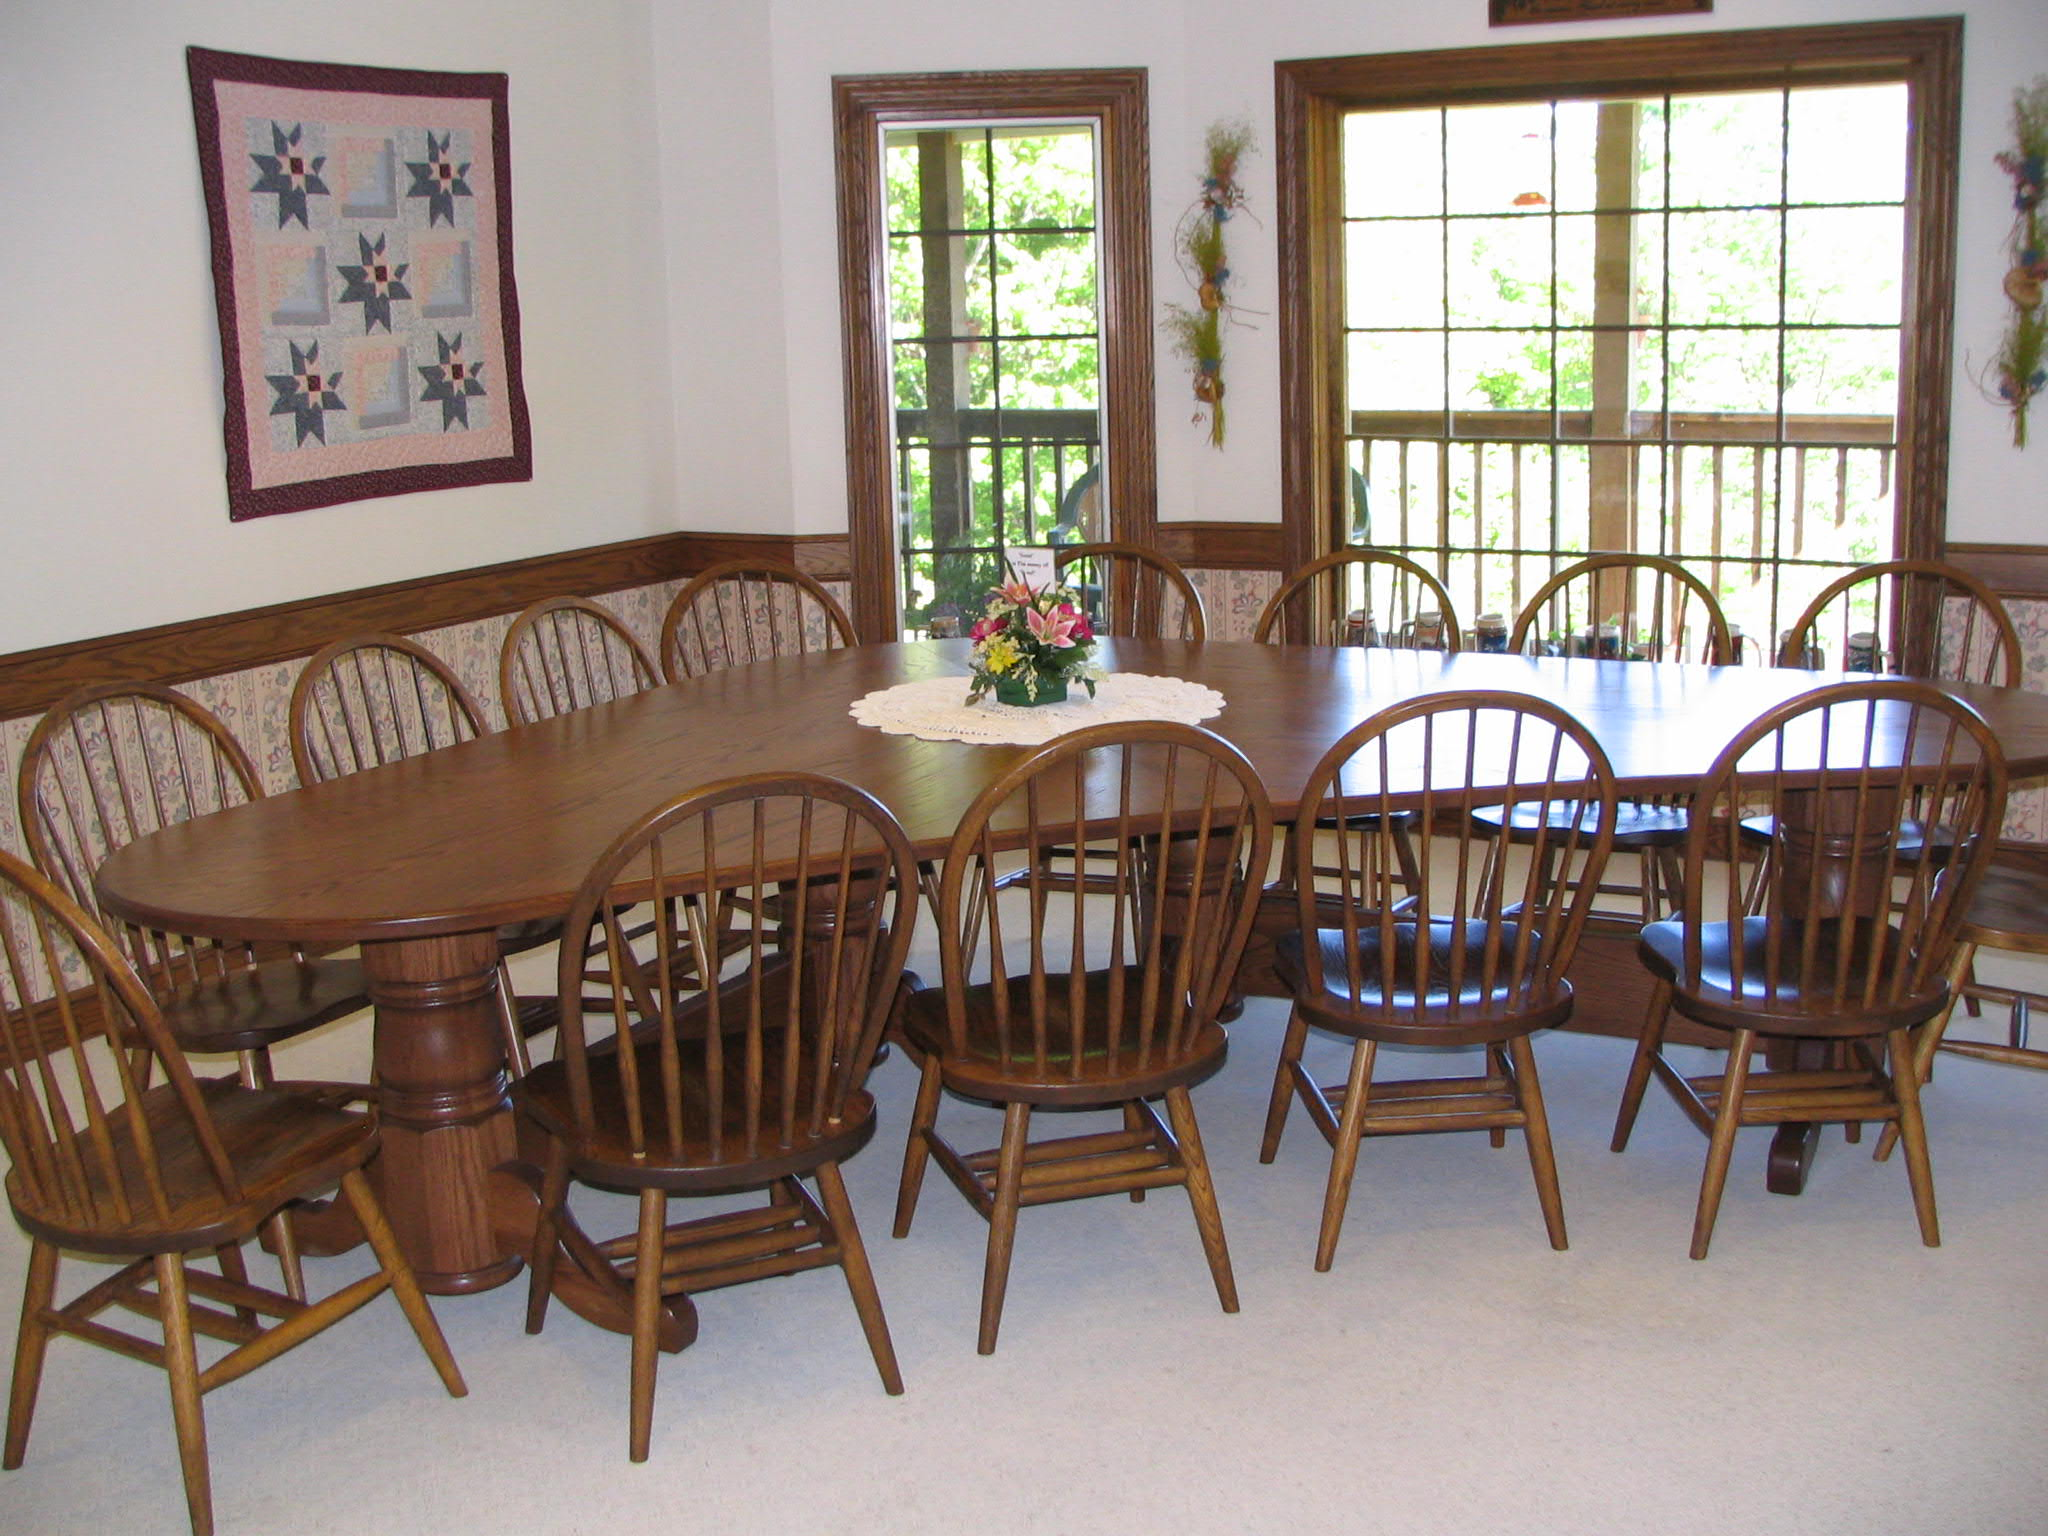 Unusual Dining Room Chairs Unique Dining Room Table W Chairs Northwood Auctions